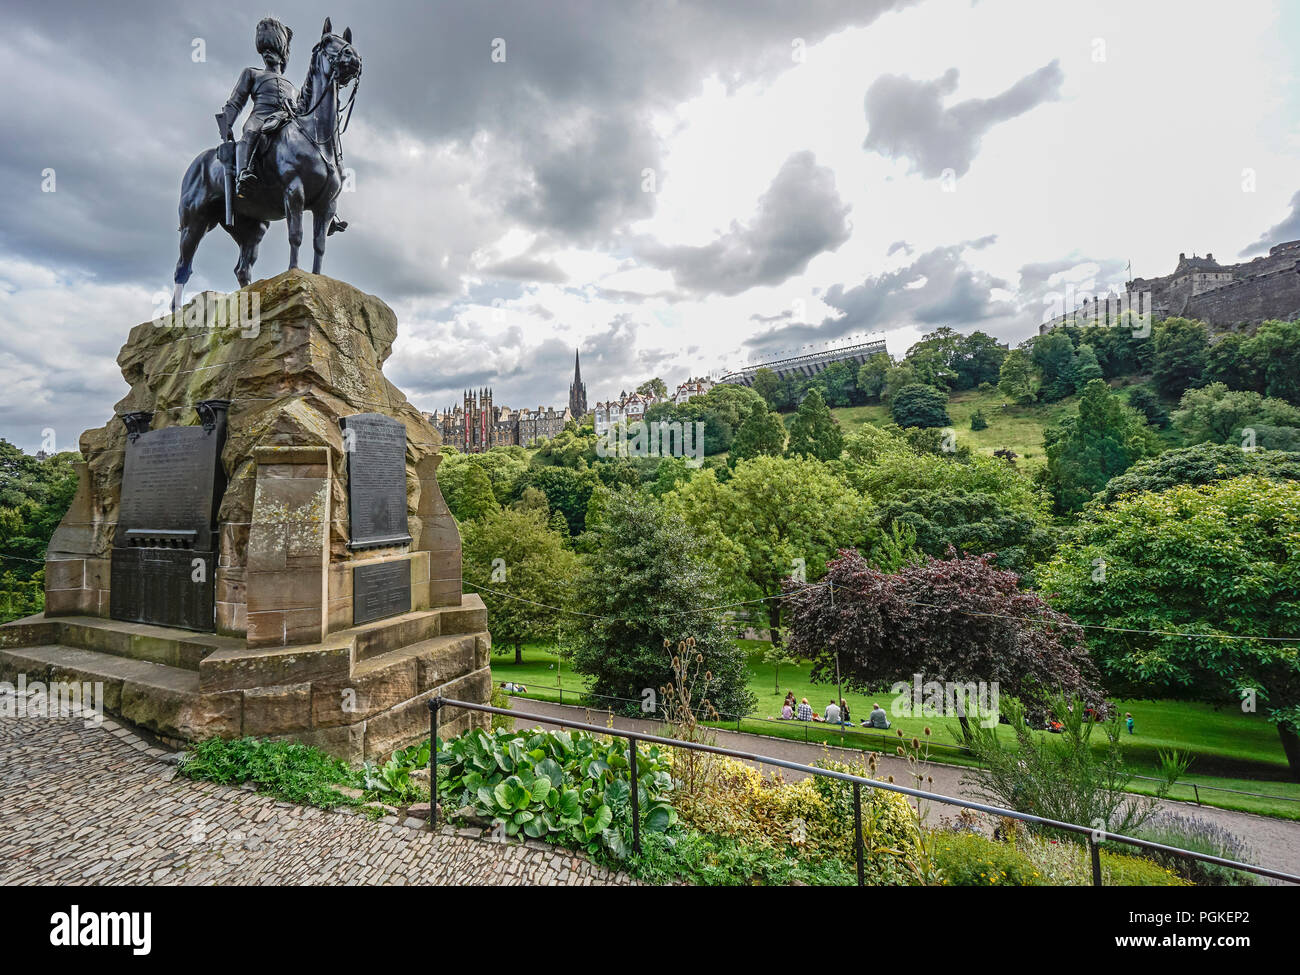 The Royal Scots Greys memorial in Princes Street Gardens West in Edinburgh Scotland UK - Stock Image